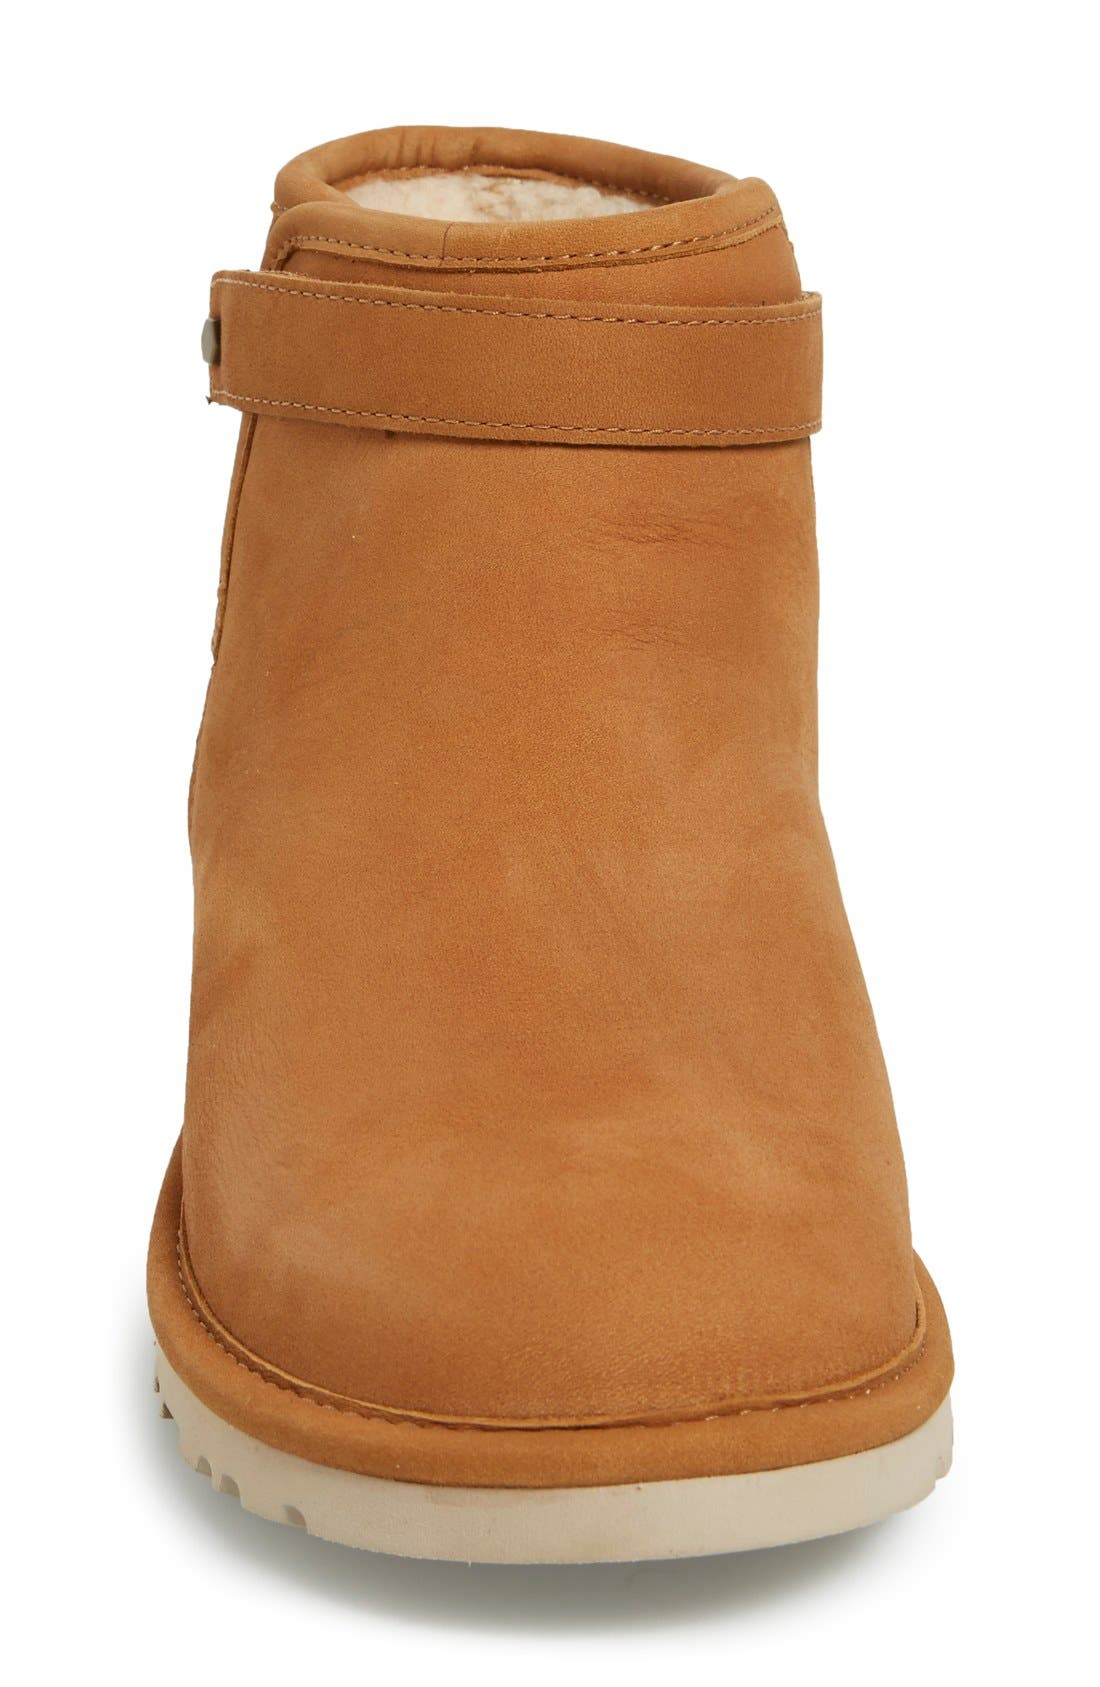 Alternate Image 3  - UGG® 'Rella' Leather Ankle Boot (Women)